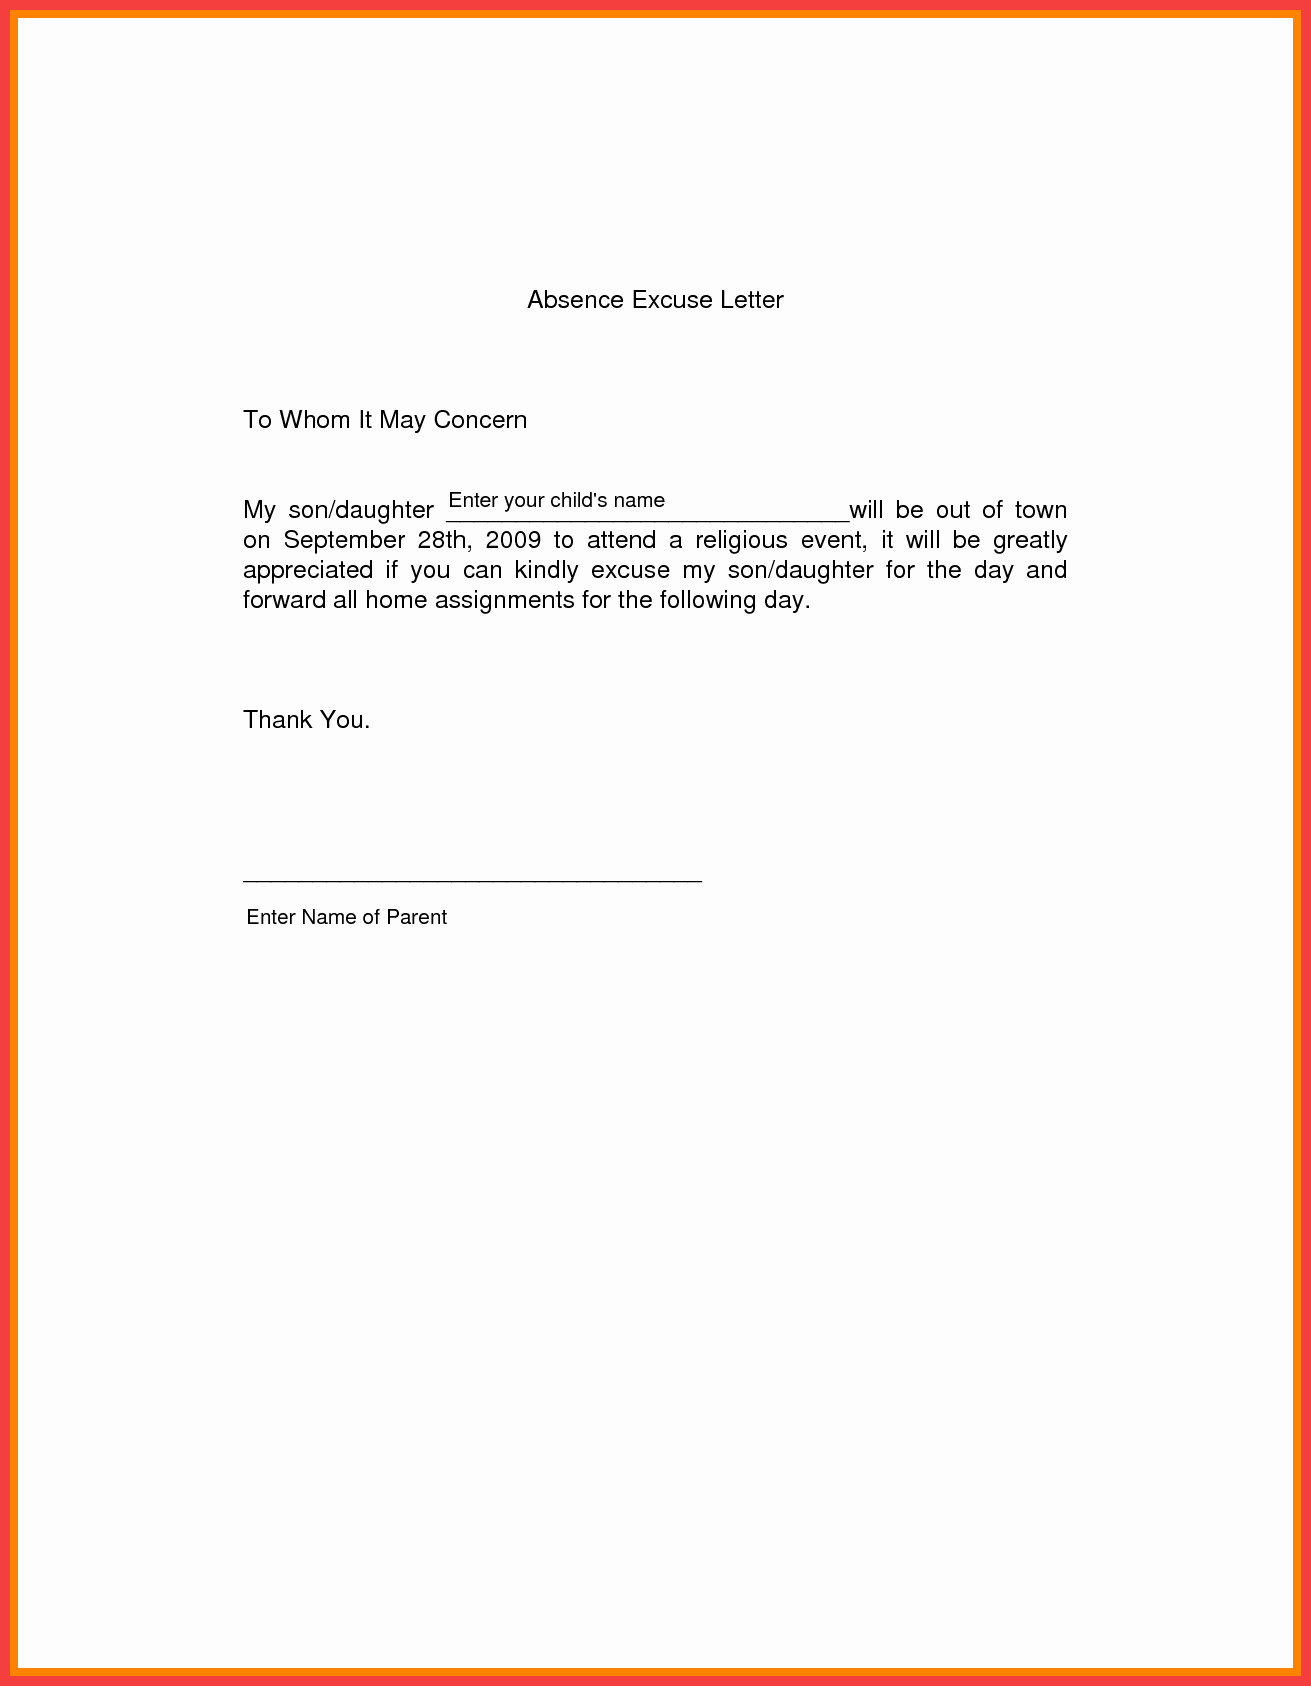 Absence Note Sample for School Inspirational School Excuse Letter Sample